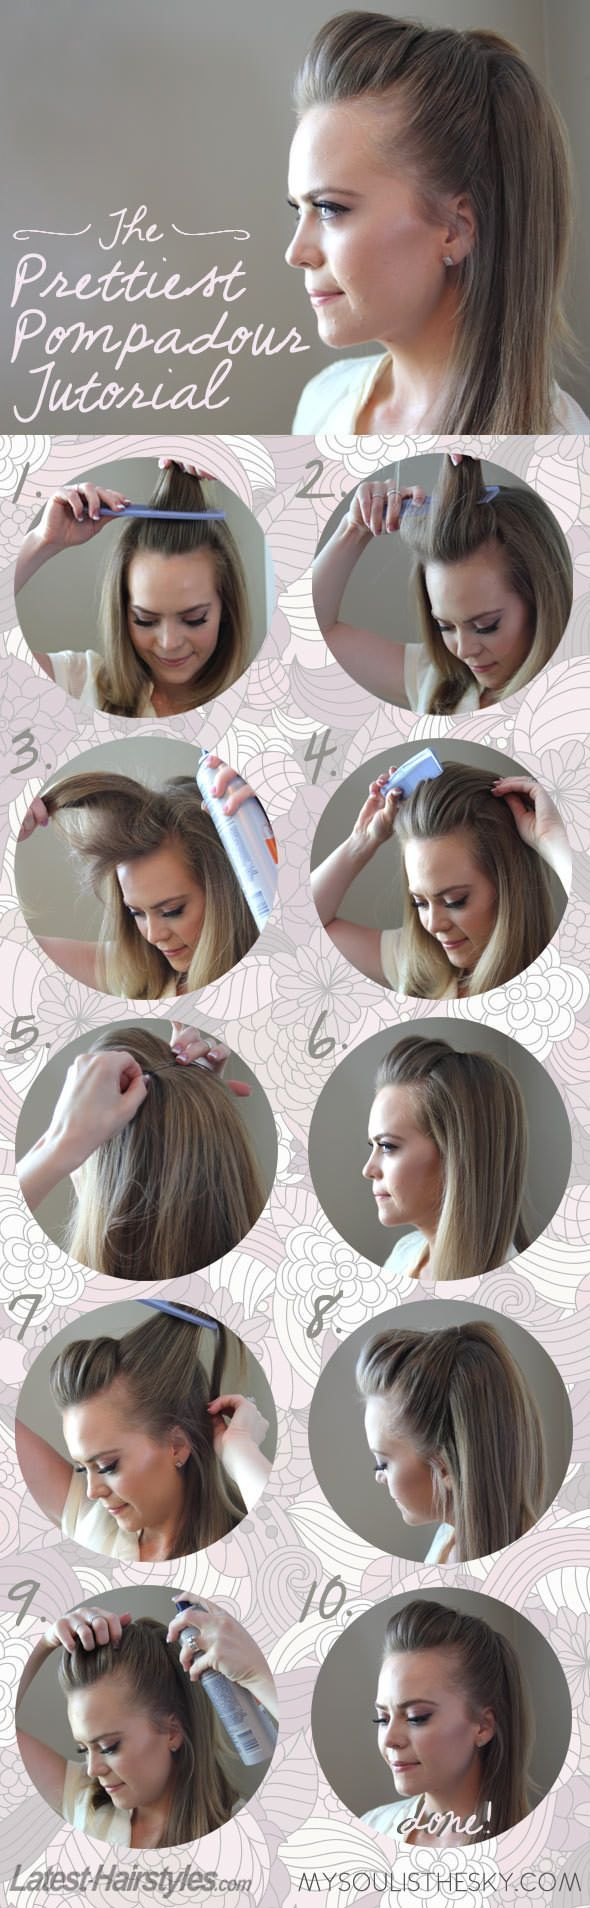 15 Spectacular Diy Hairstyle Ideas For A Busy Morning Made For Less Than 5 Minutes Five Minute Hairstyles Hair Beauty Hair Styles